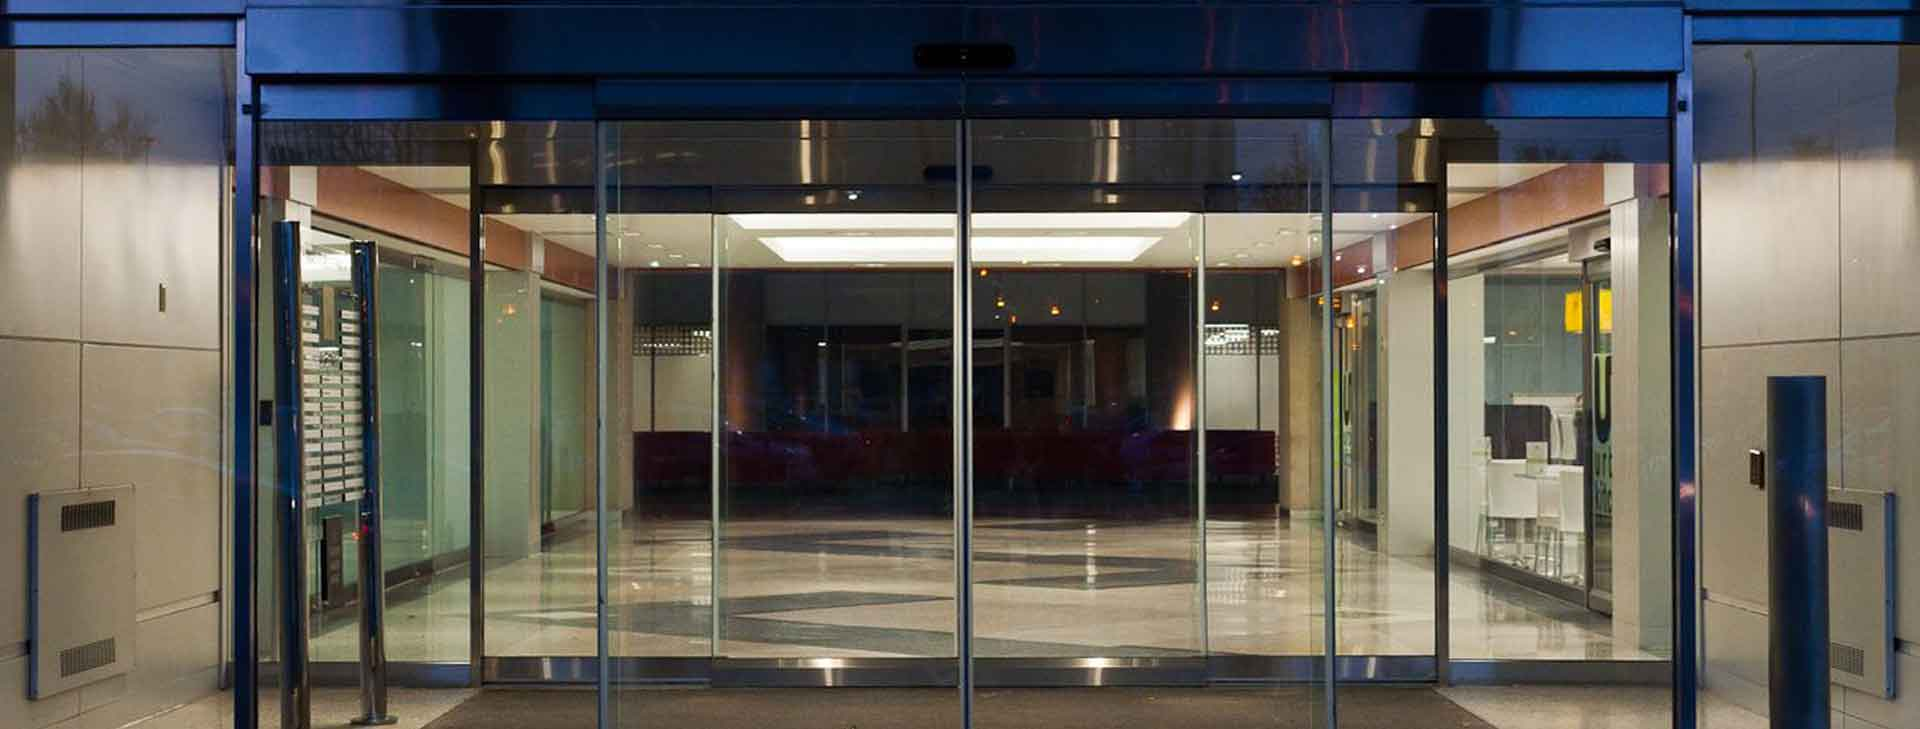 Electric Sliding Doors : Automatic sliding door buy product on guangzhou topbright